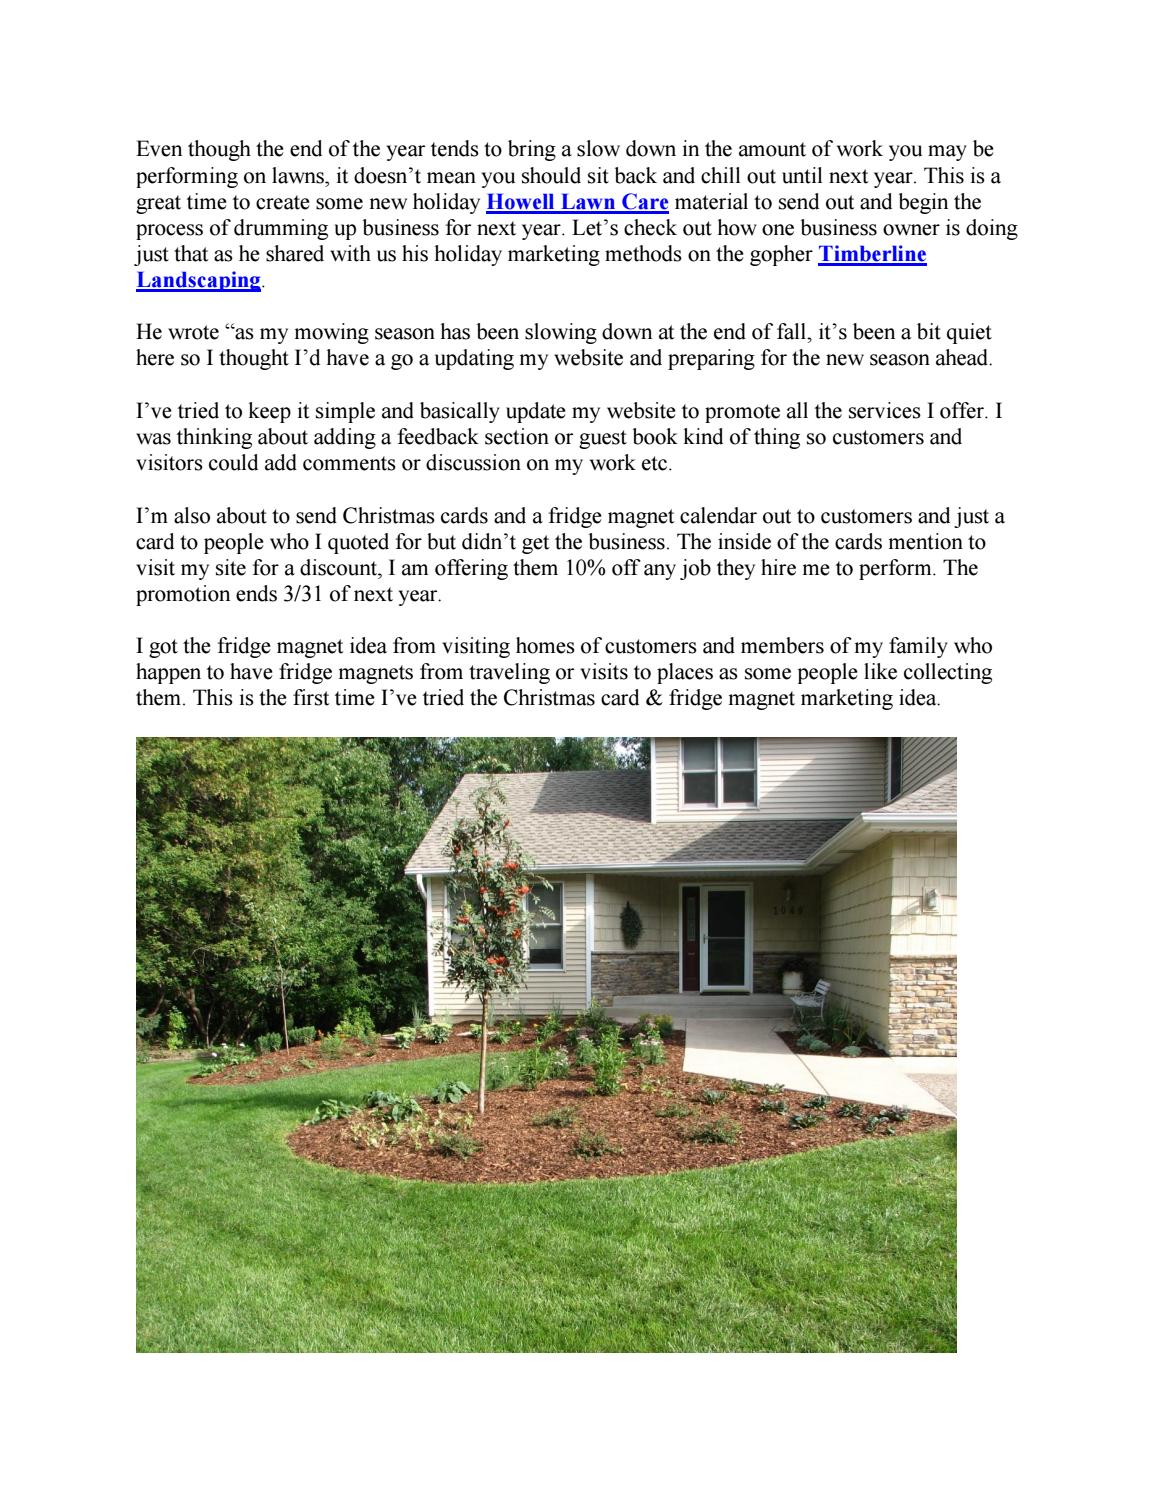 Christmas Lawn Care Marketing Ideas By Timberline Outdoor Services Issuu